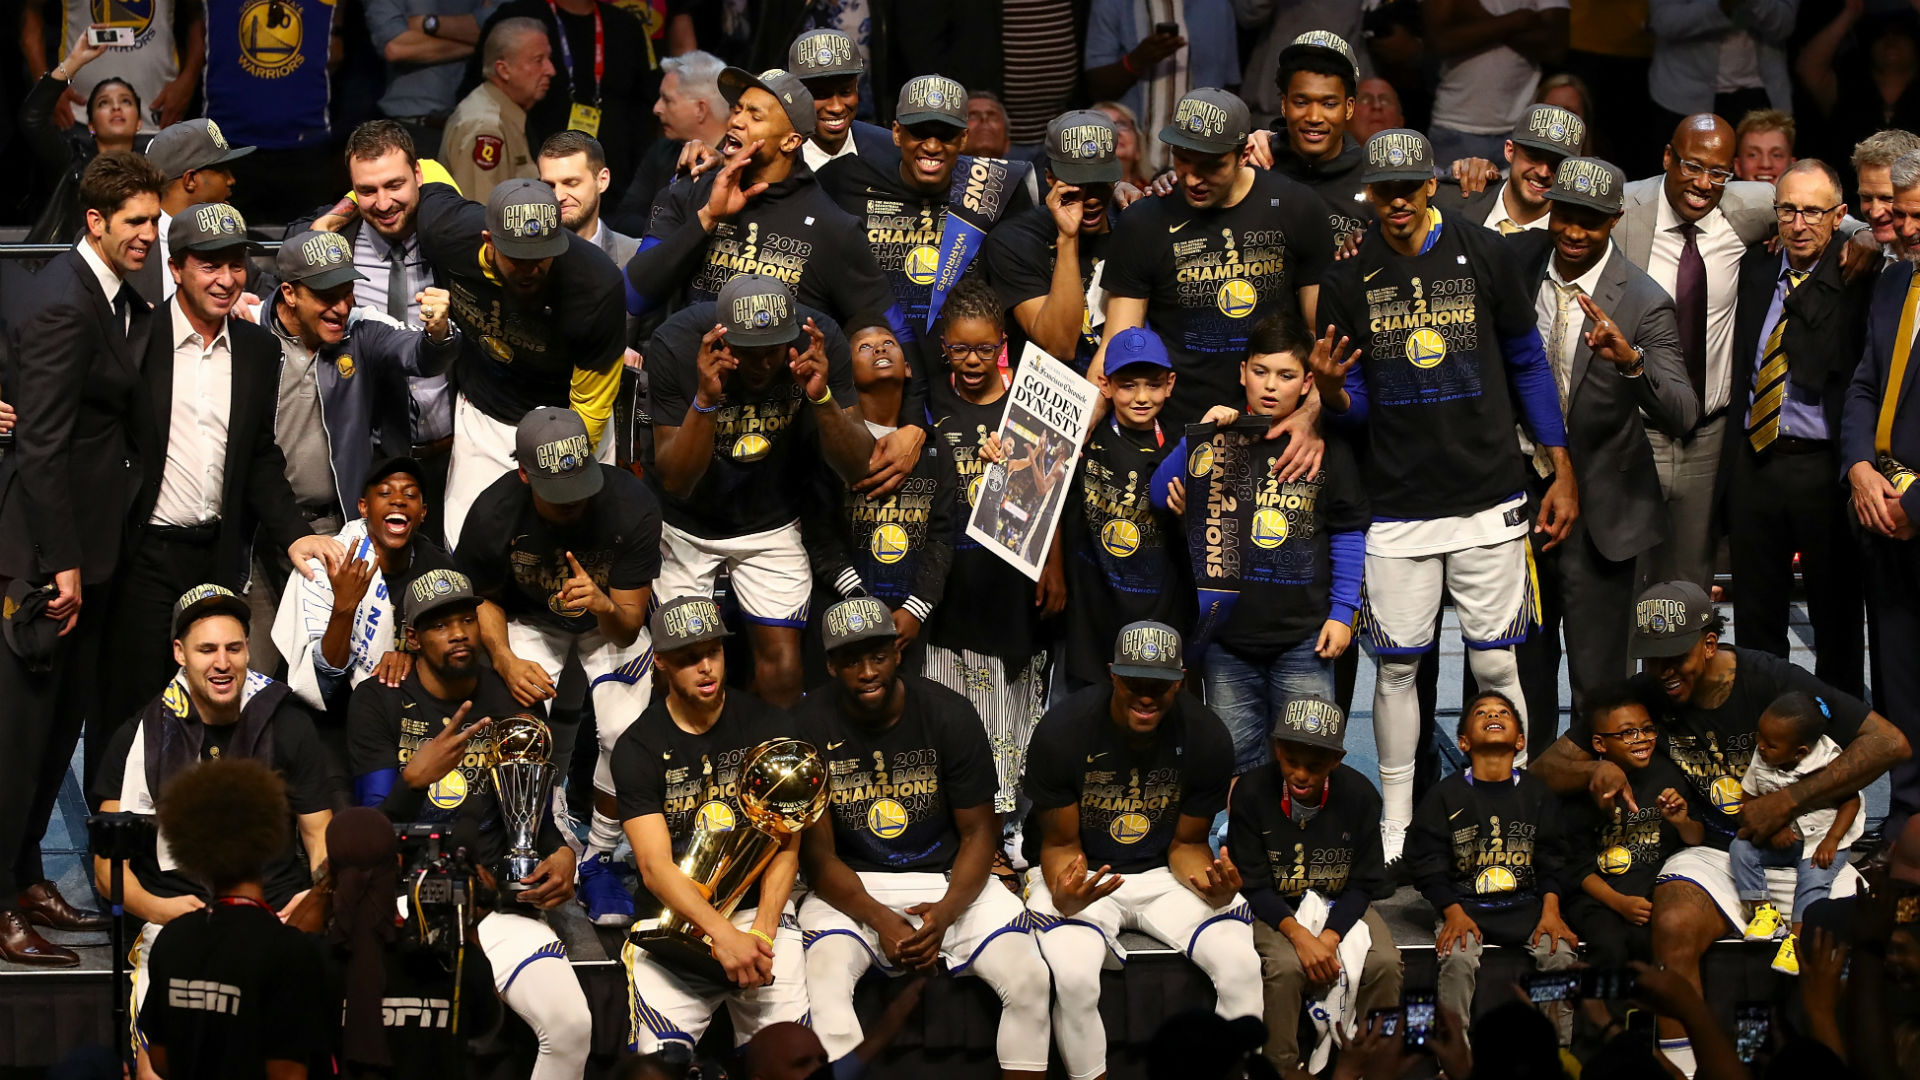 Watch: Warriors get wild celebrating second straight title at parade